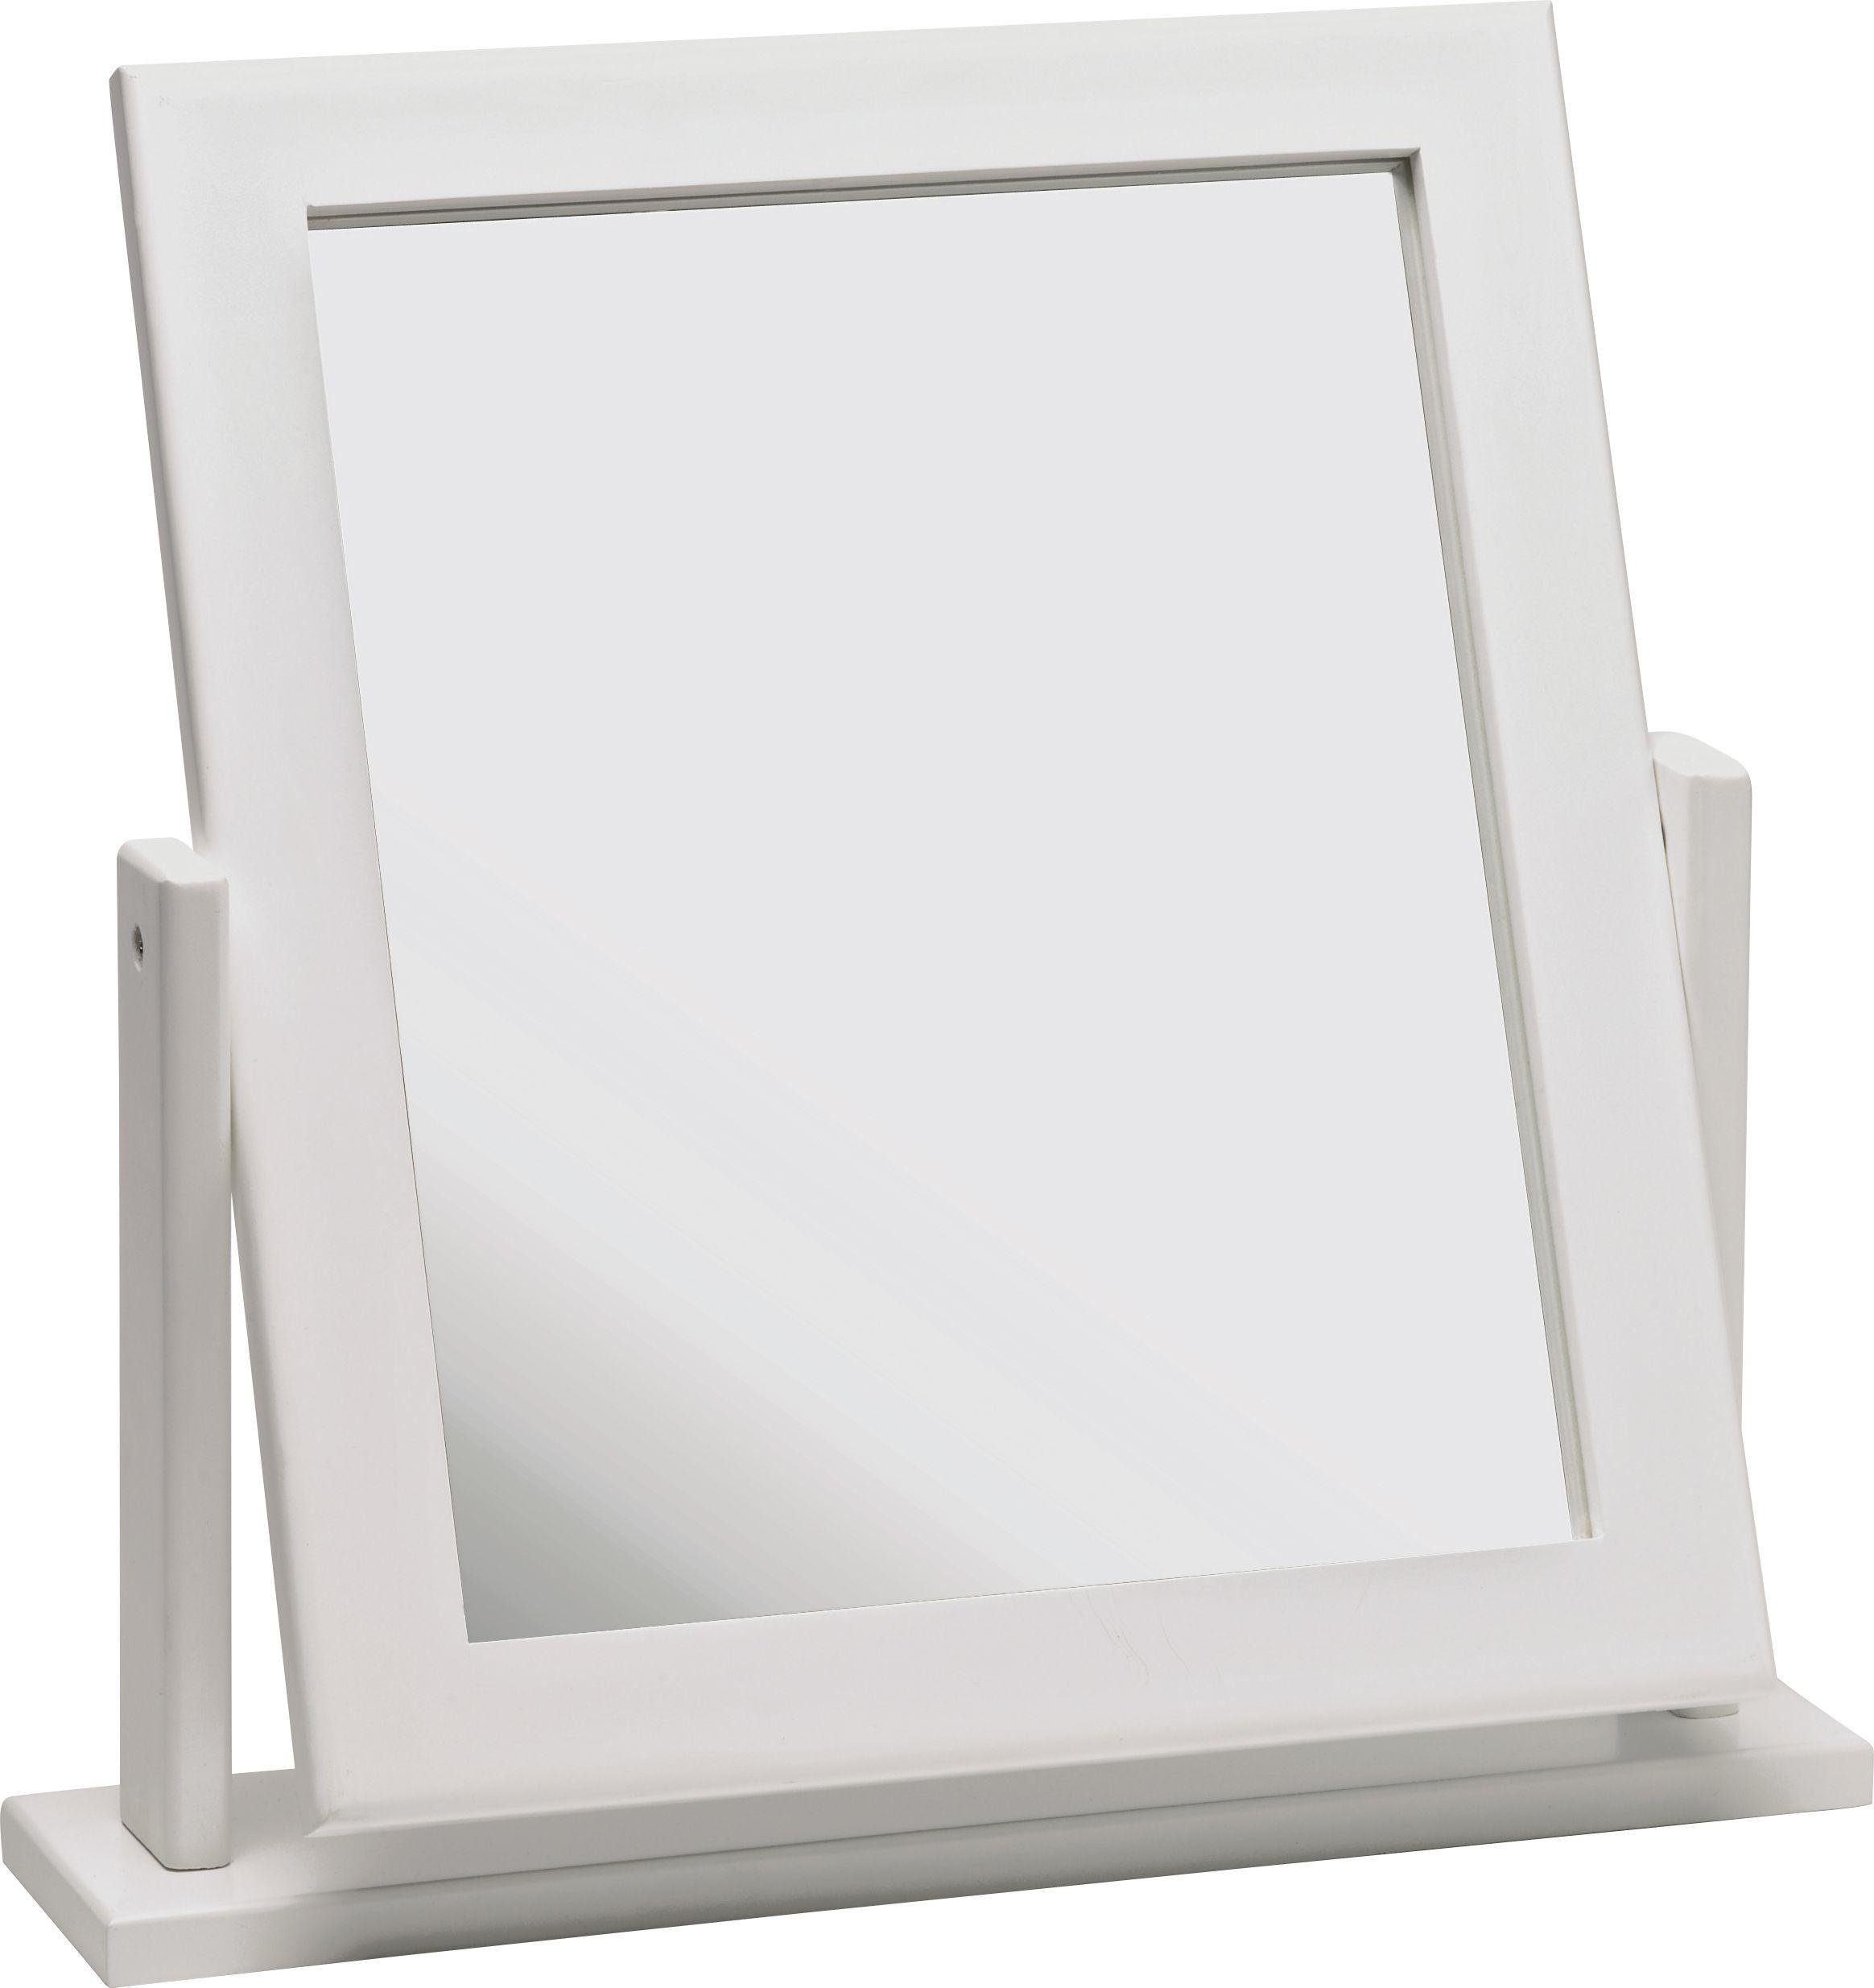 dressing table mirrors home square dressing table mirror - white624/0156 JVMDAIH